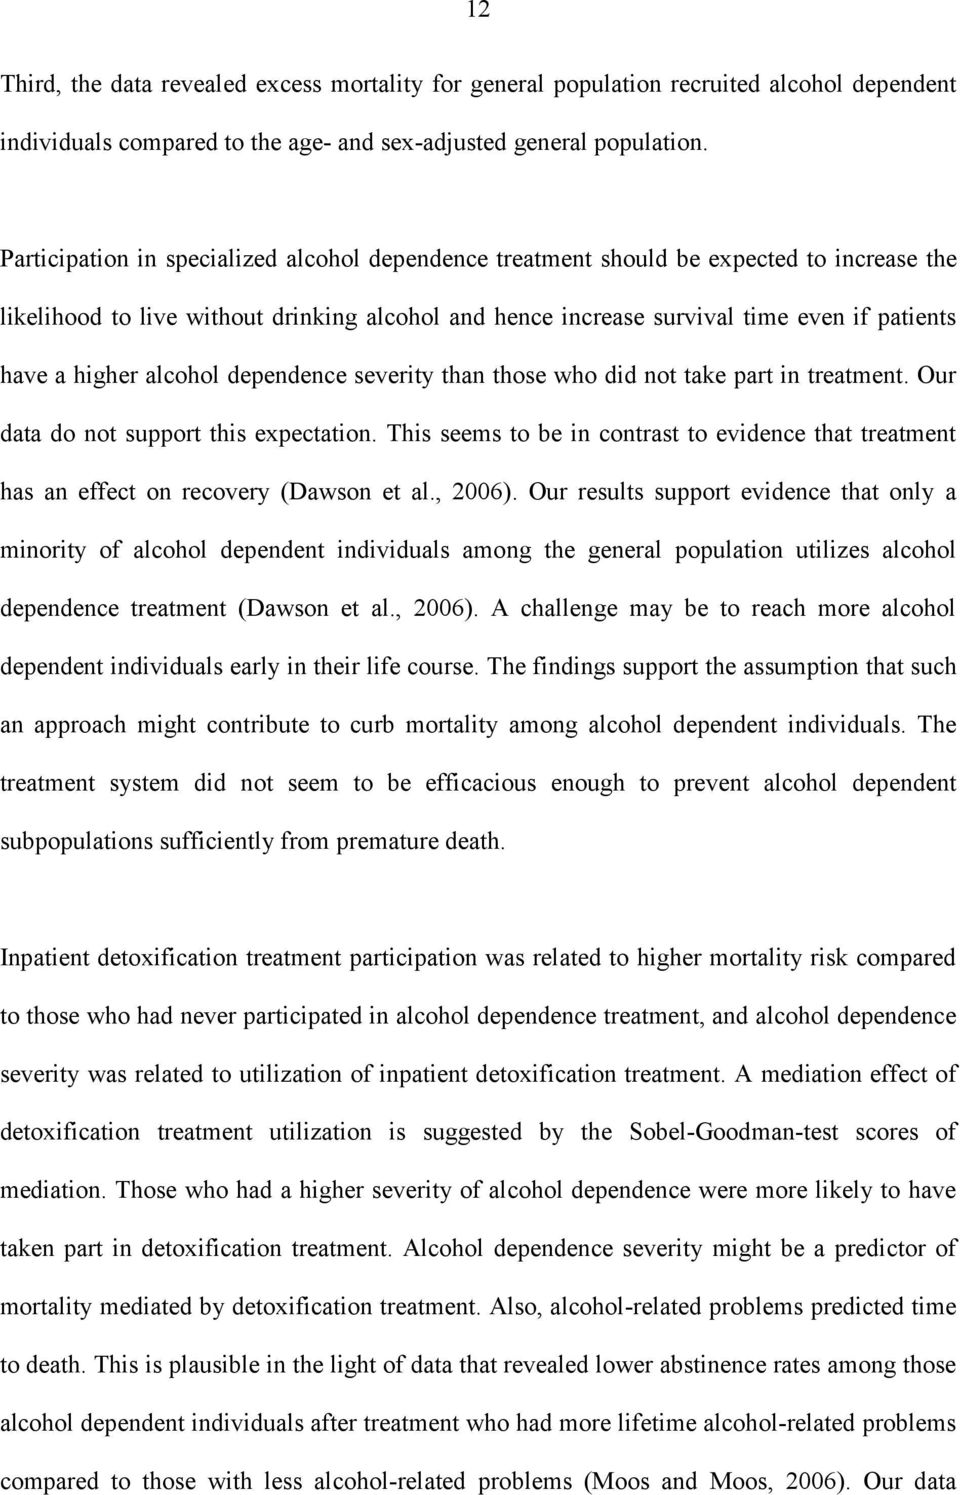 higher alcohol dependence severity than those who did not take part in treatment. Our data do not support this expectation.